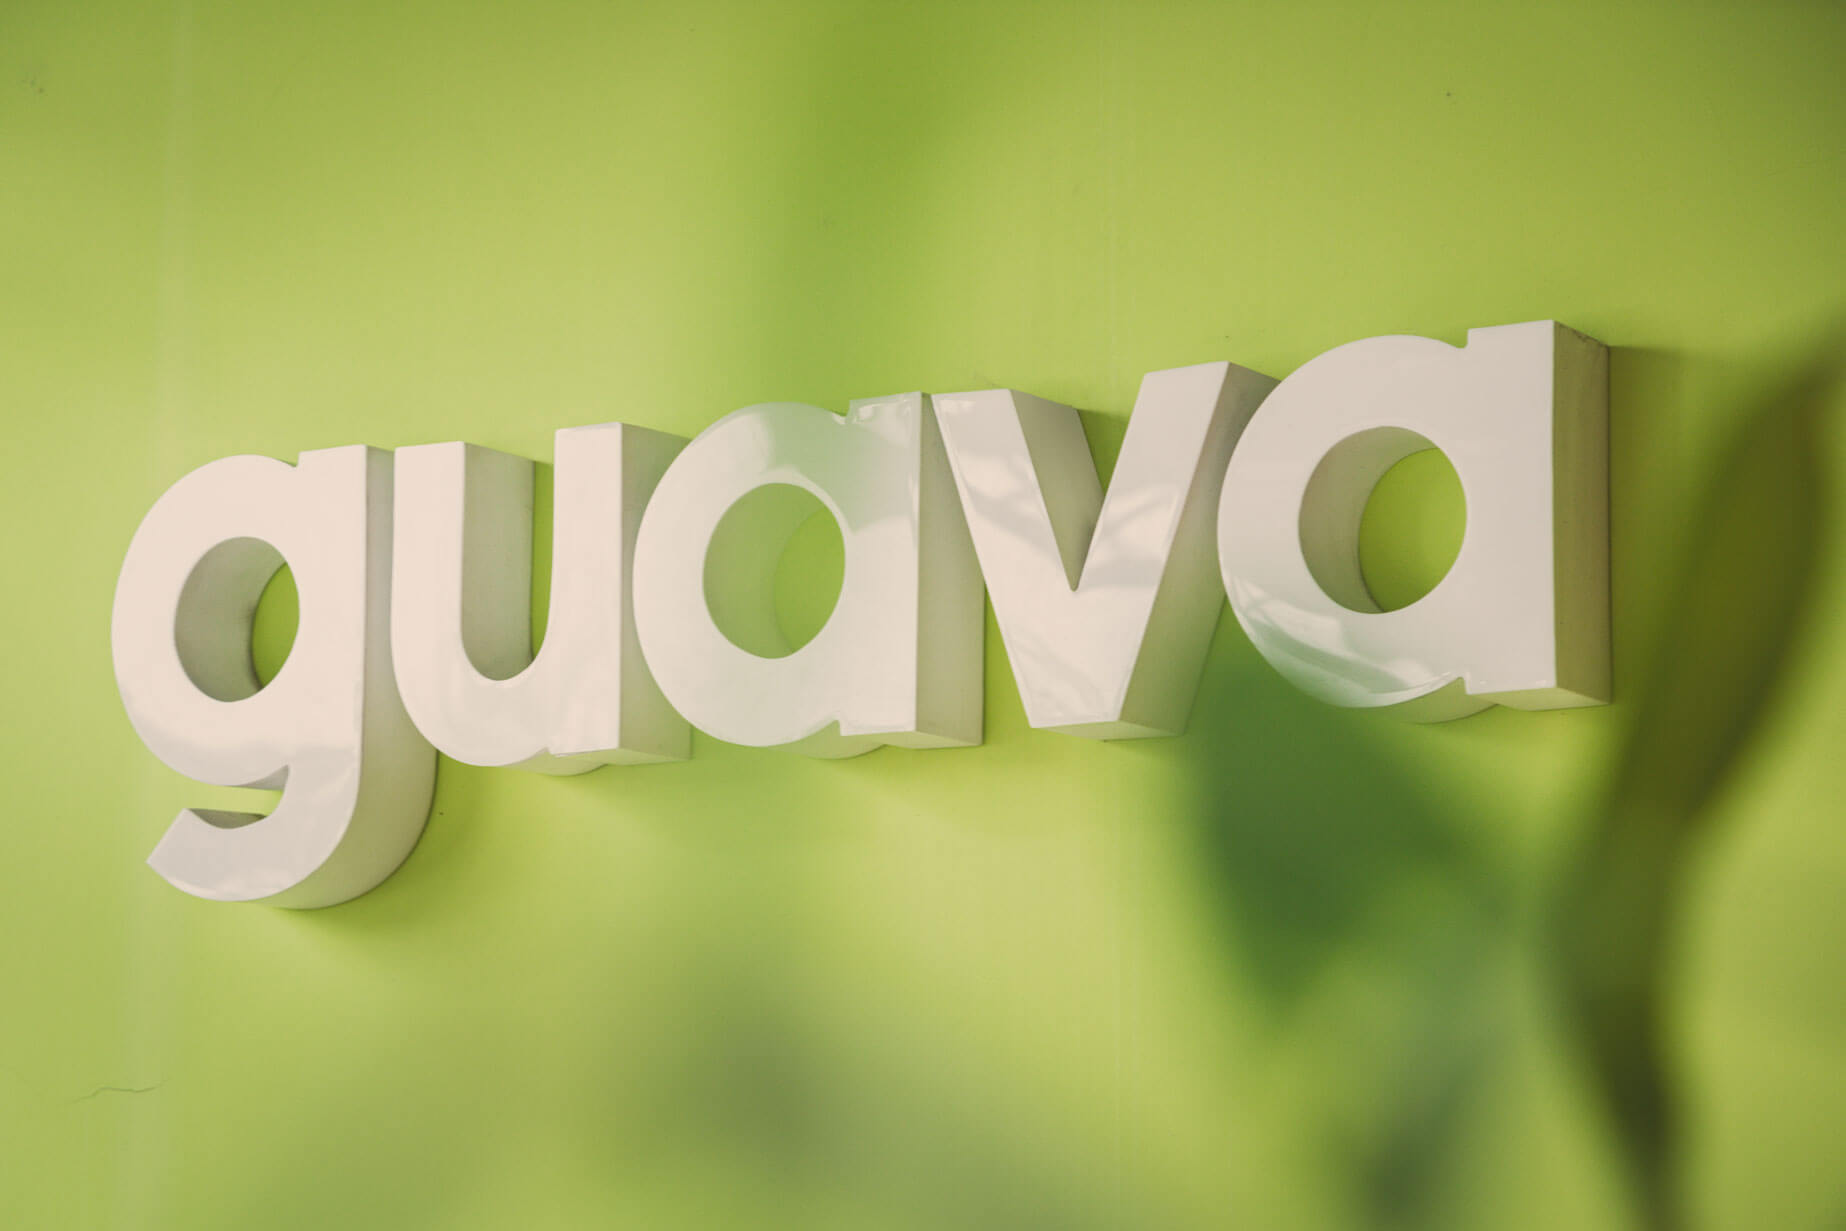 Guava's logo beyond leaves